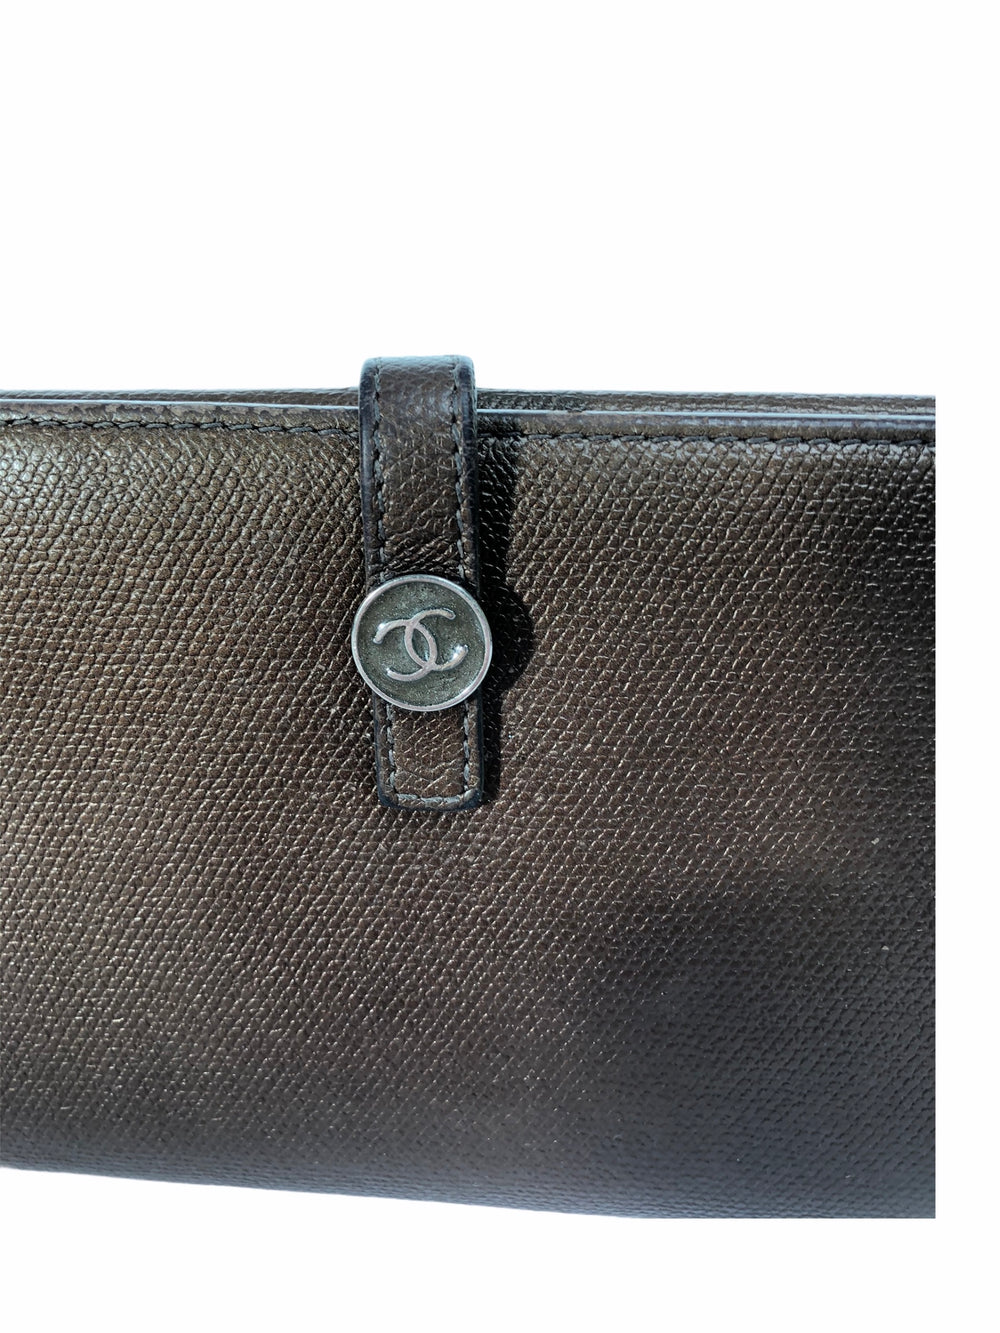 Chanel Bronze Leather Wallet - As Seen on Instagram 4/11/2020